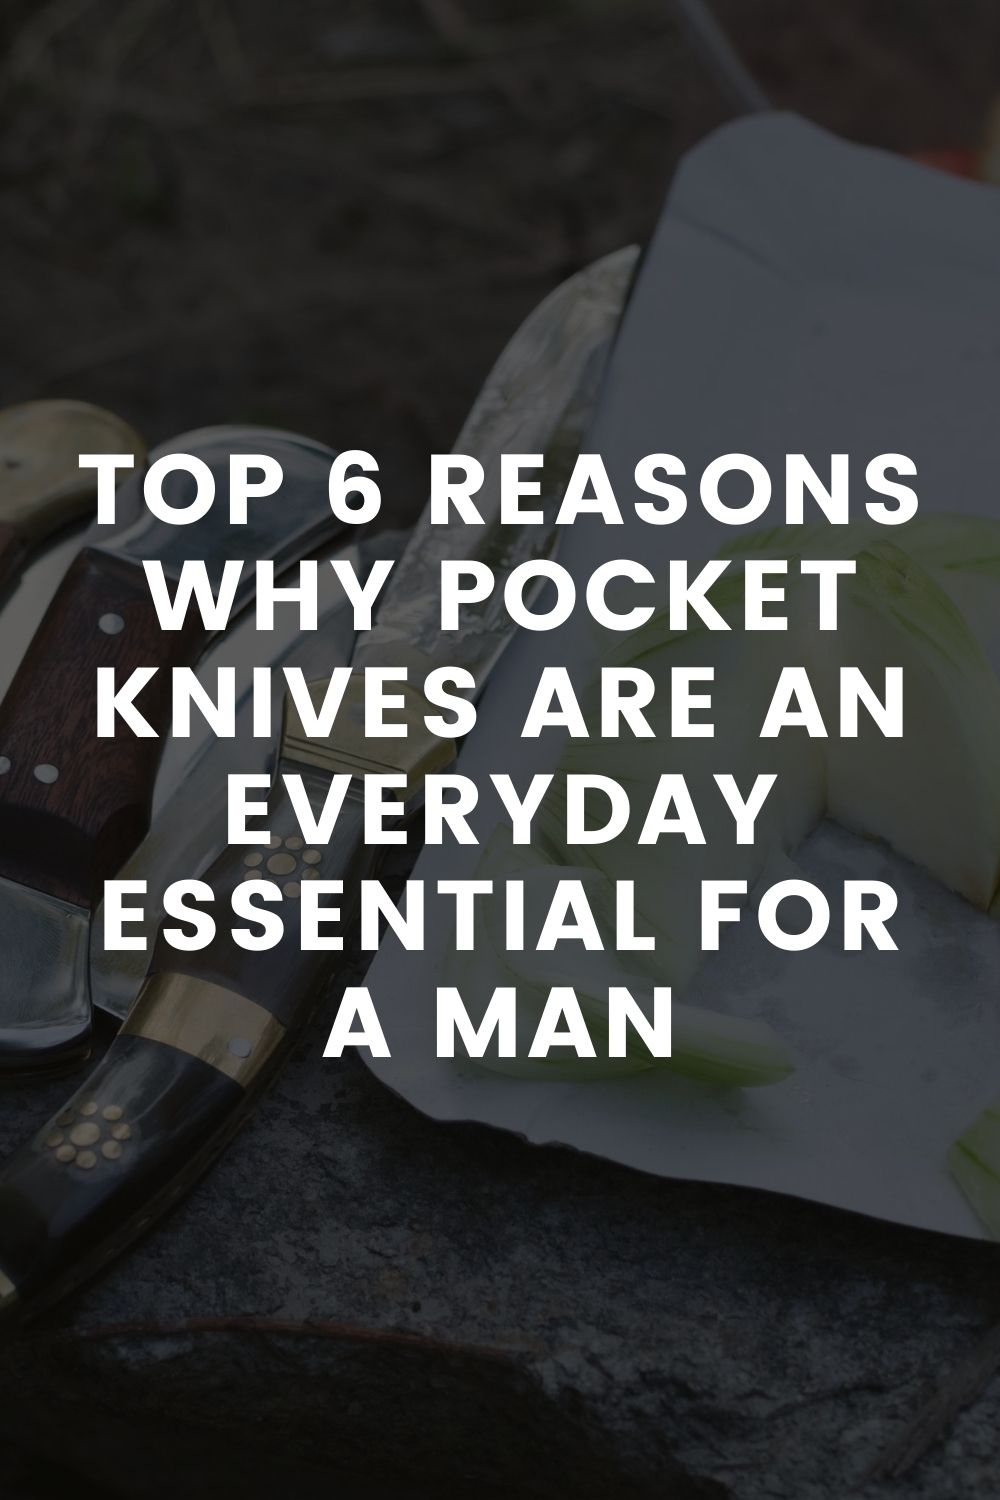 Top 6 Reasons Why Pocket Knives are an Everyday Essential for a Man